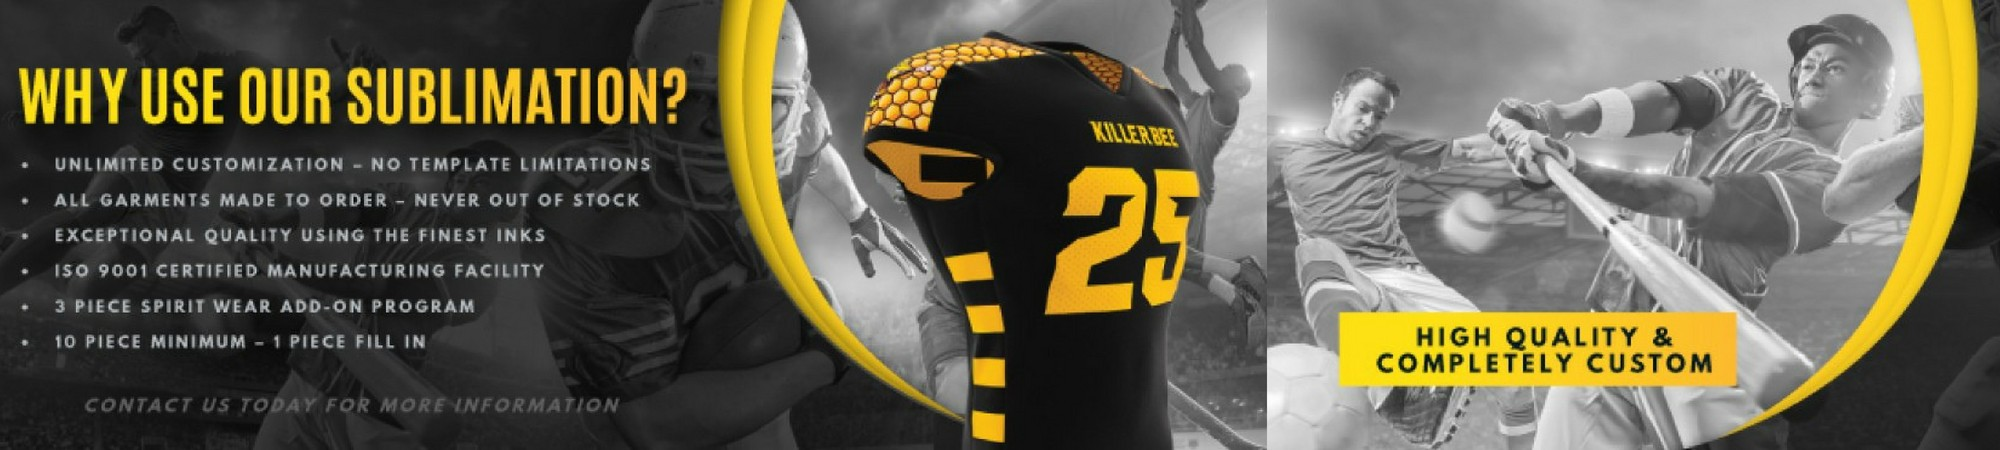 Custom Uniforms, Apparel, Athletic Equipment, & Promo Products - Home